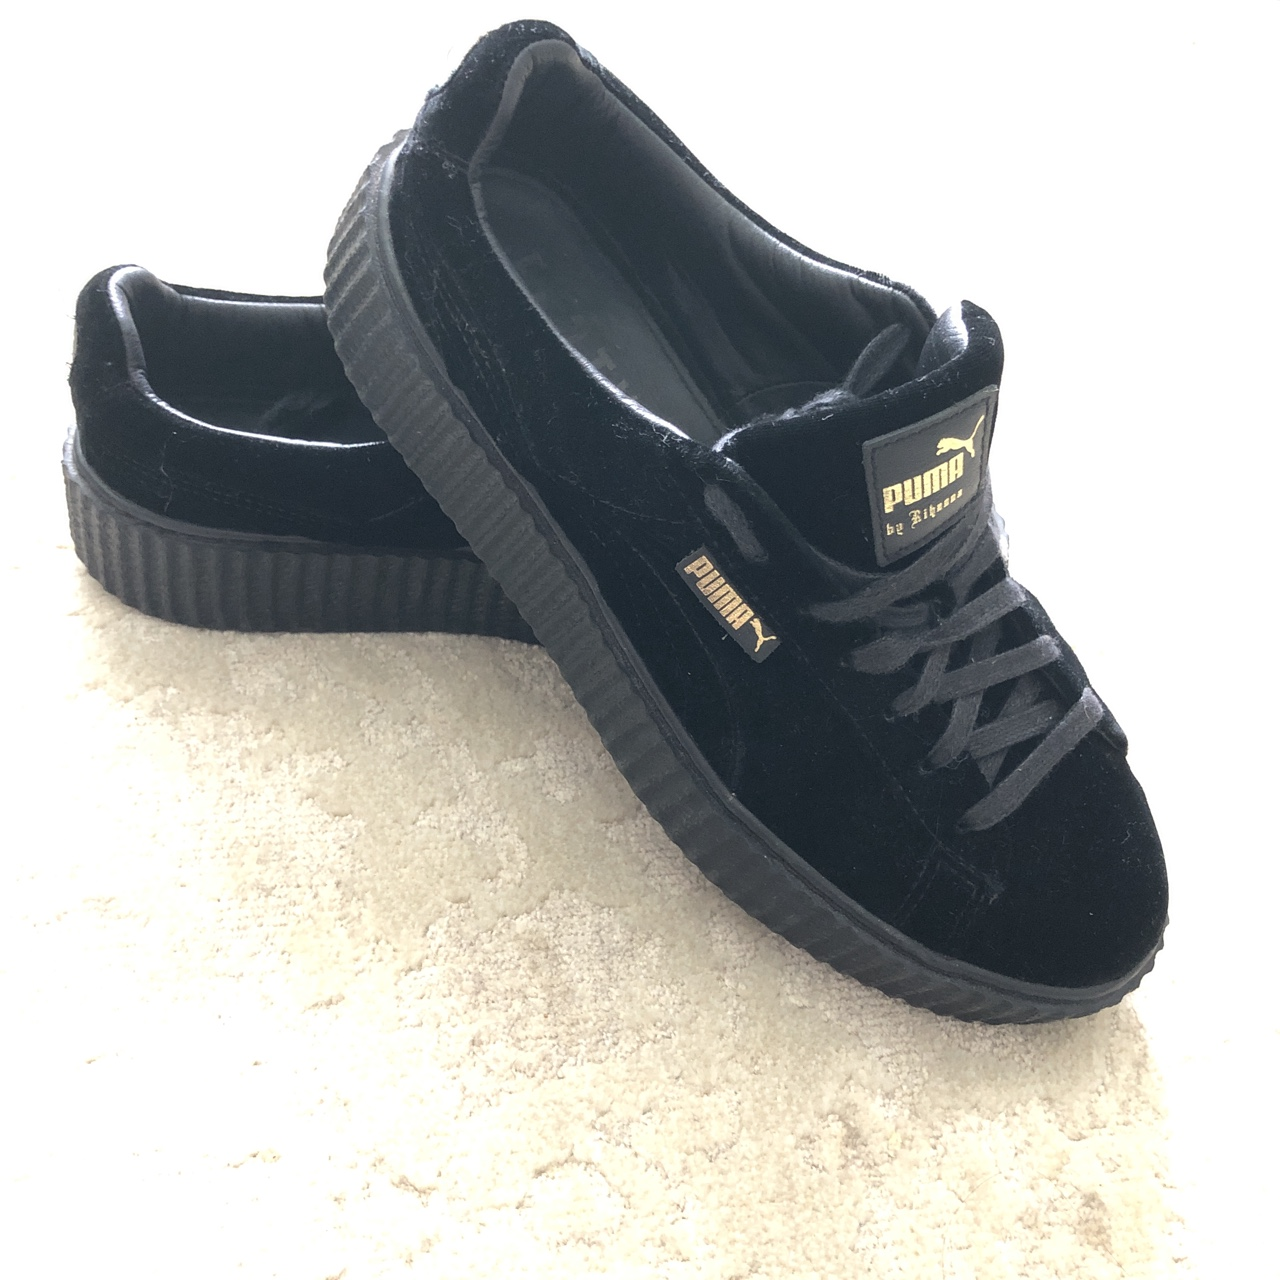 finest selection 66bcf 84d05 Fenty puma black velvet creepers women's size 12... - Depop